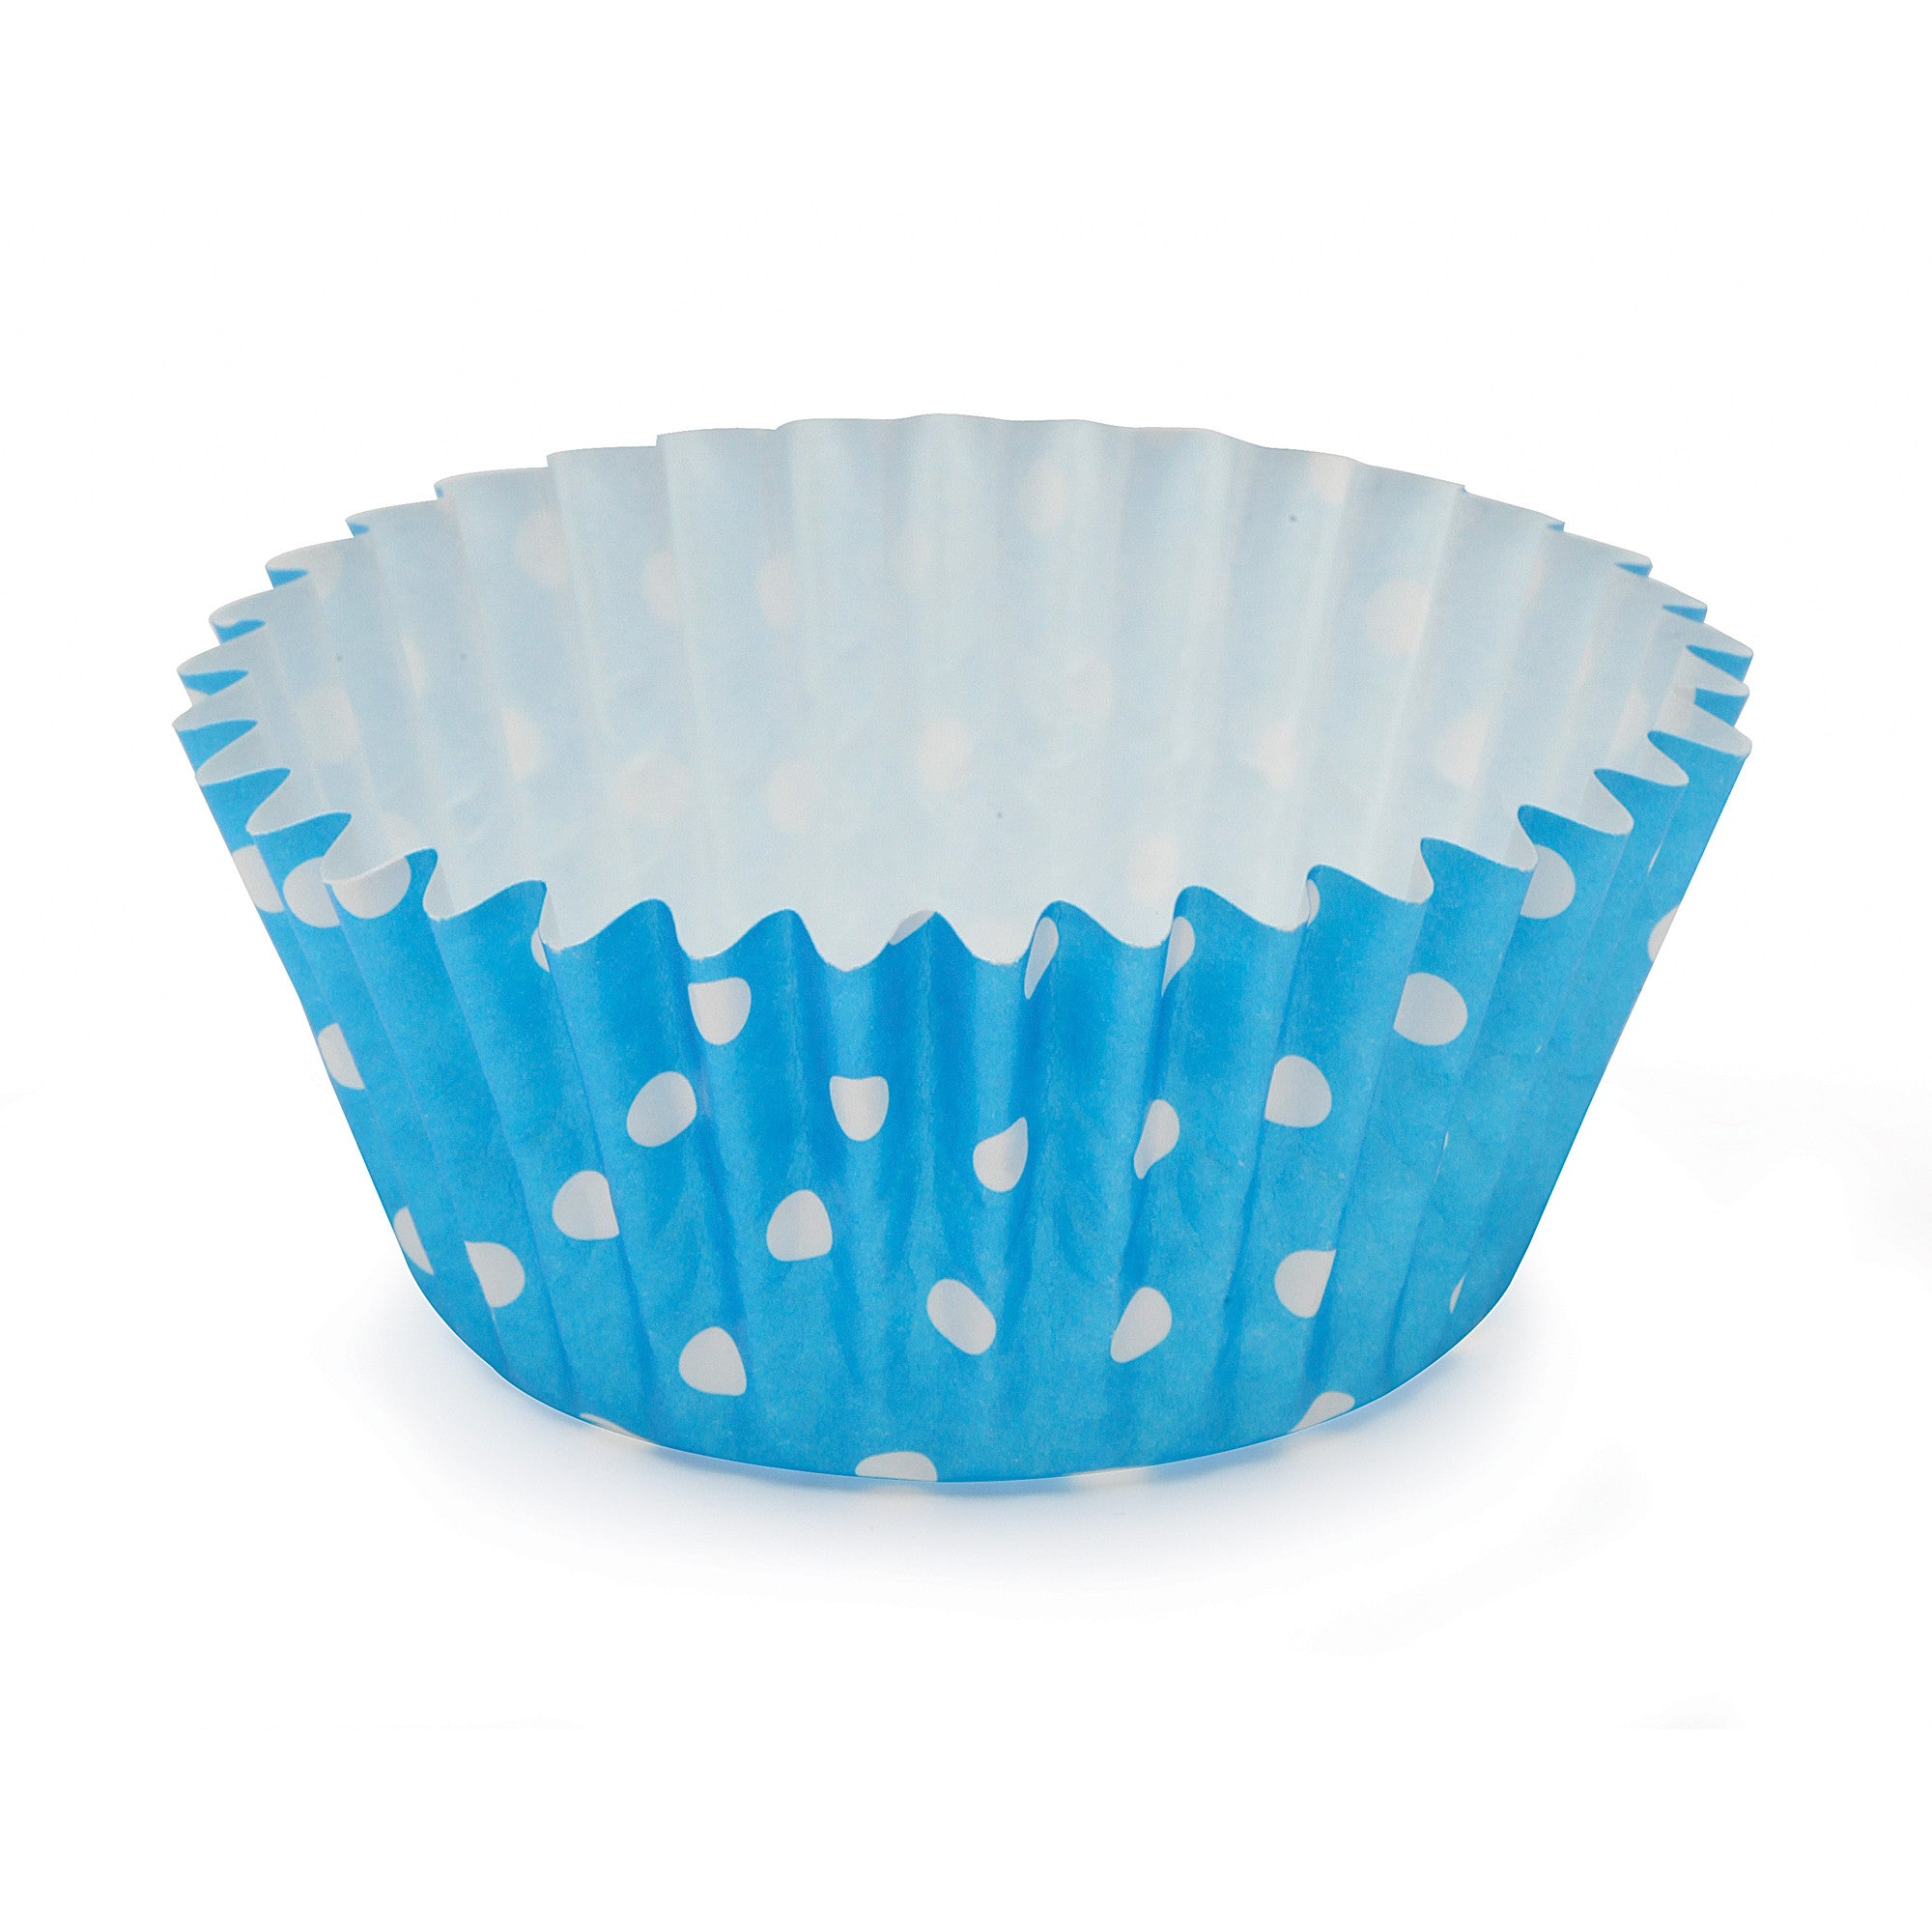 Cupcake Cups, Polka Dot Blue - Welcome Home Brands